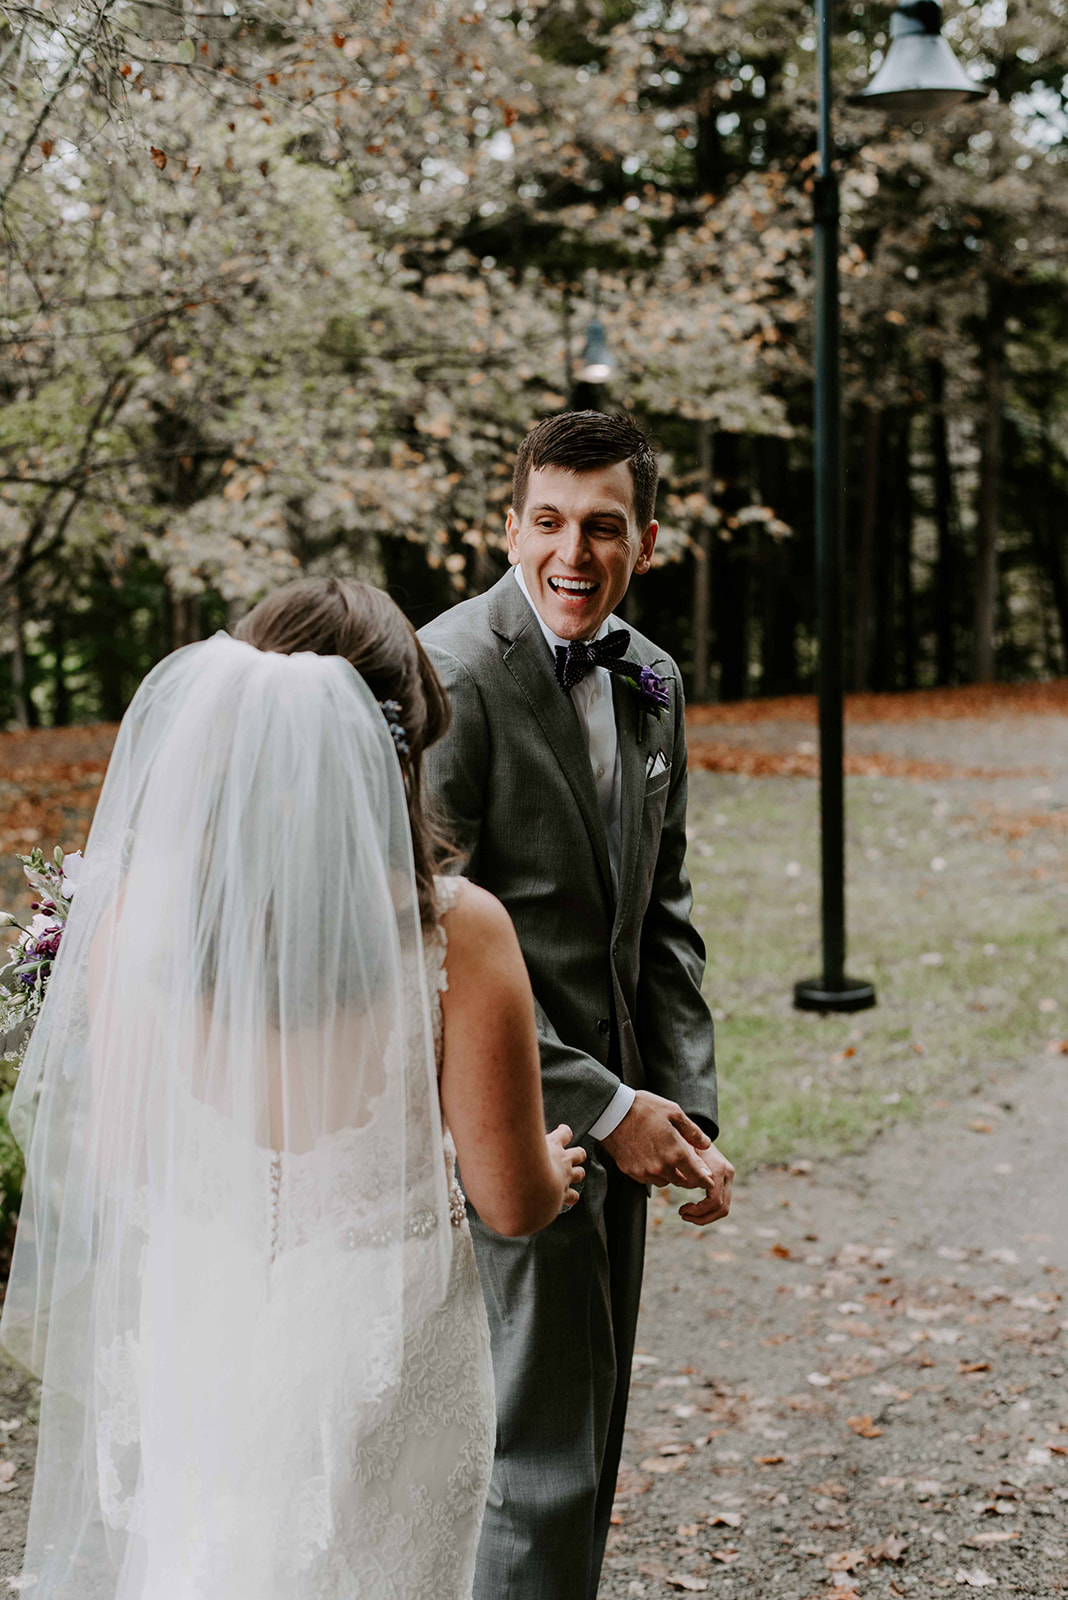 New Hampshire wedding photographer for a boho and intimate first look at Stonewall Farm, Keene, NH